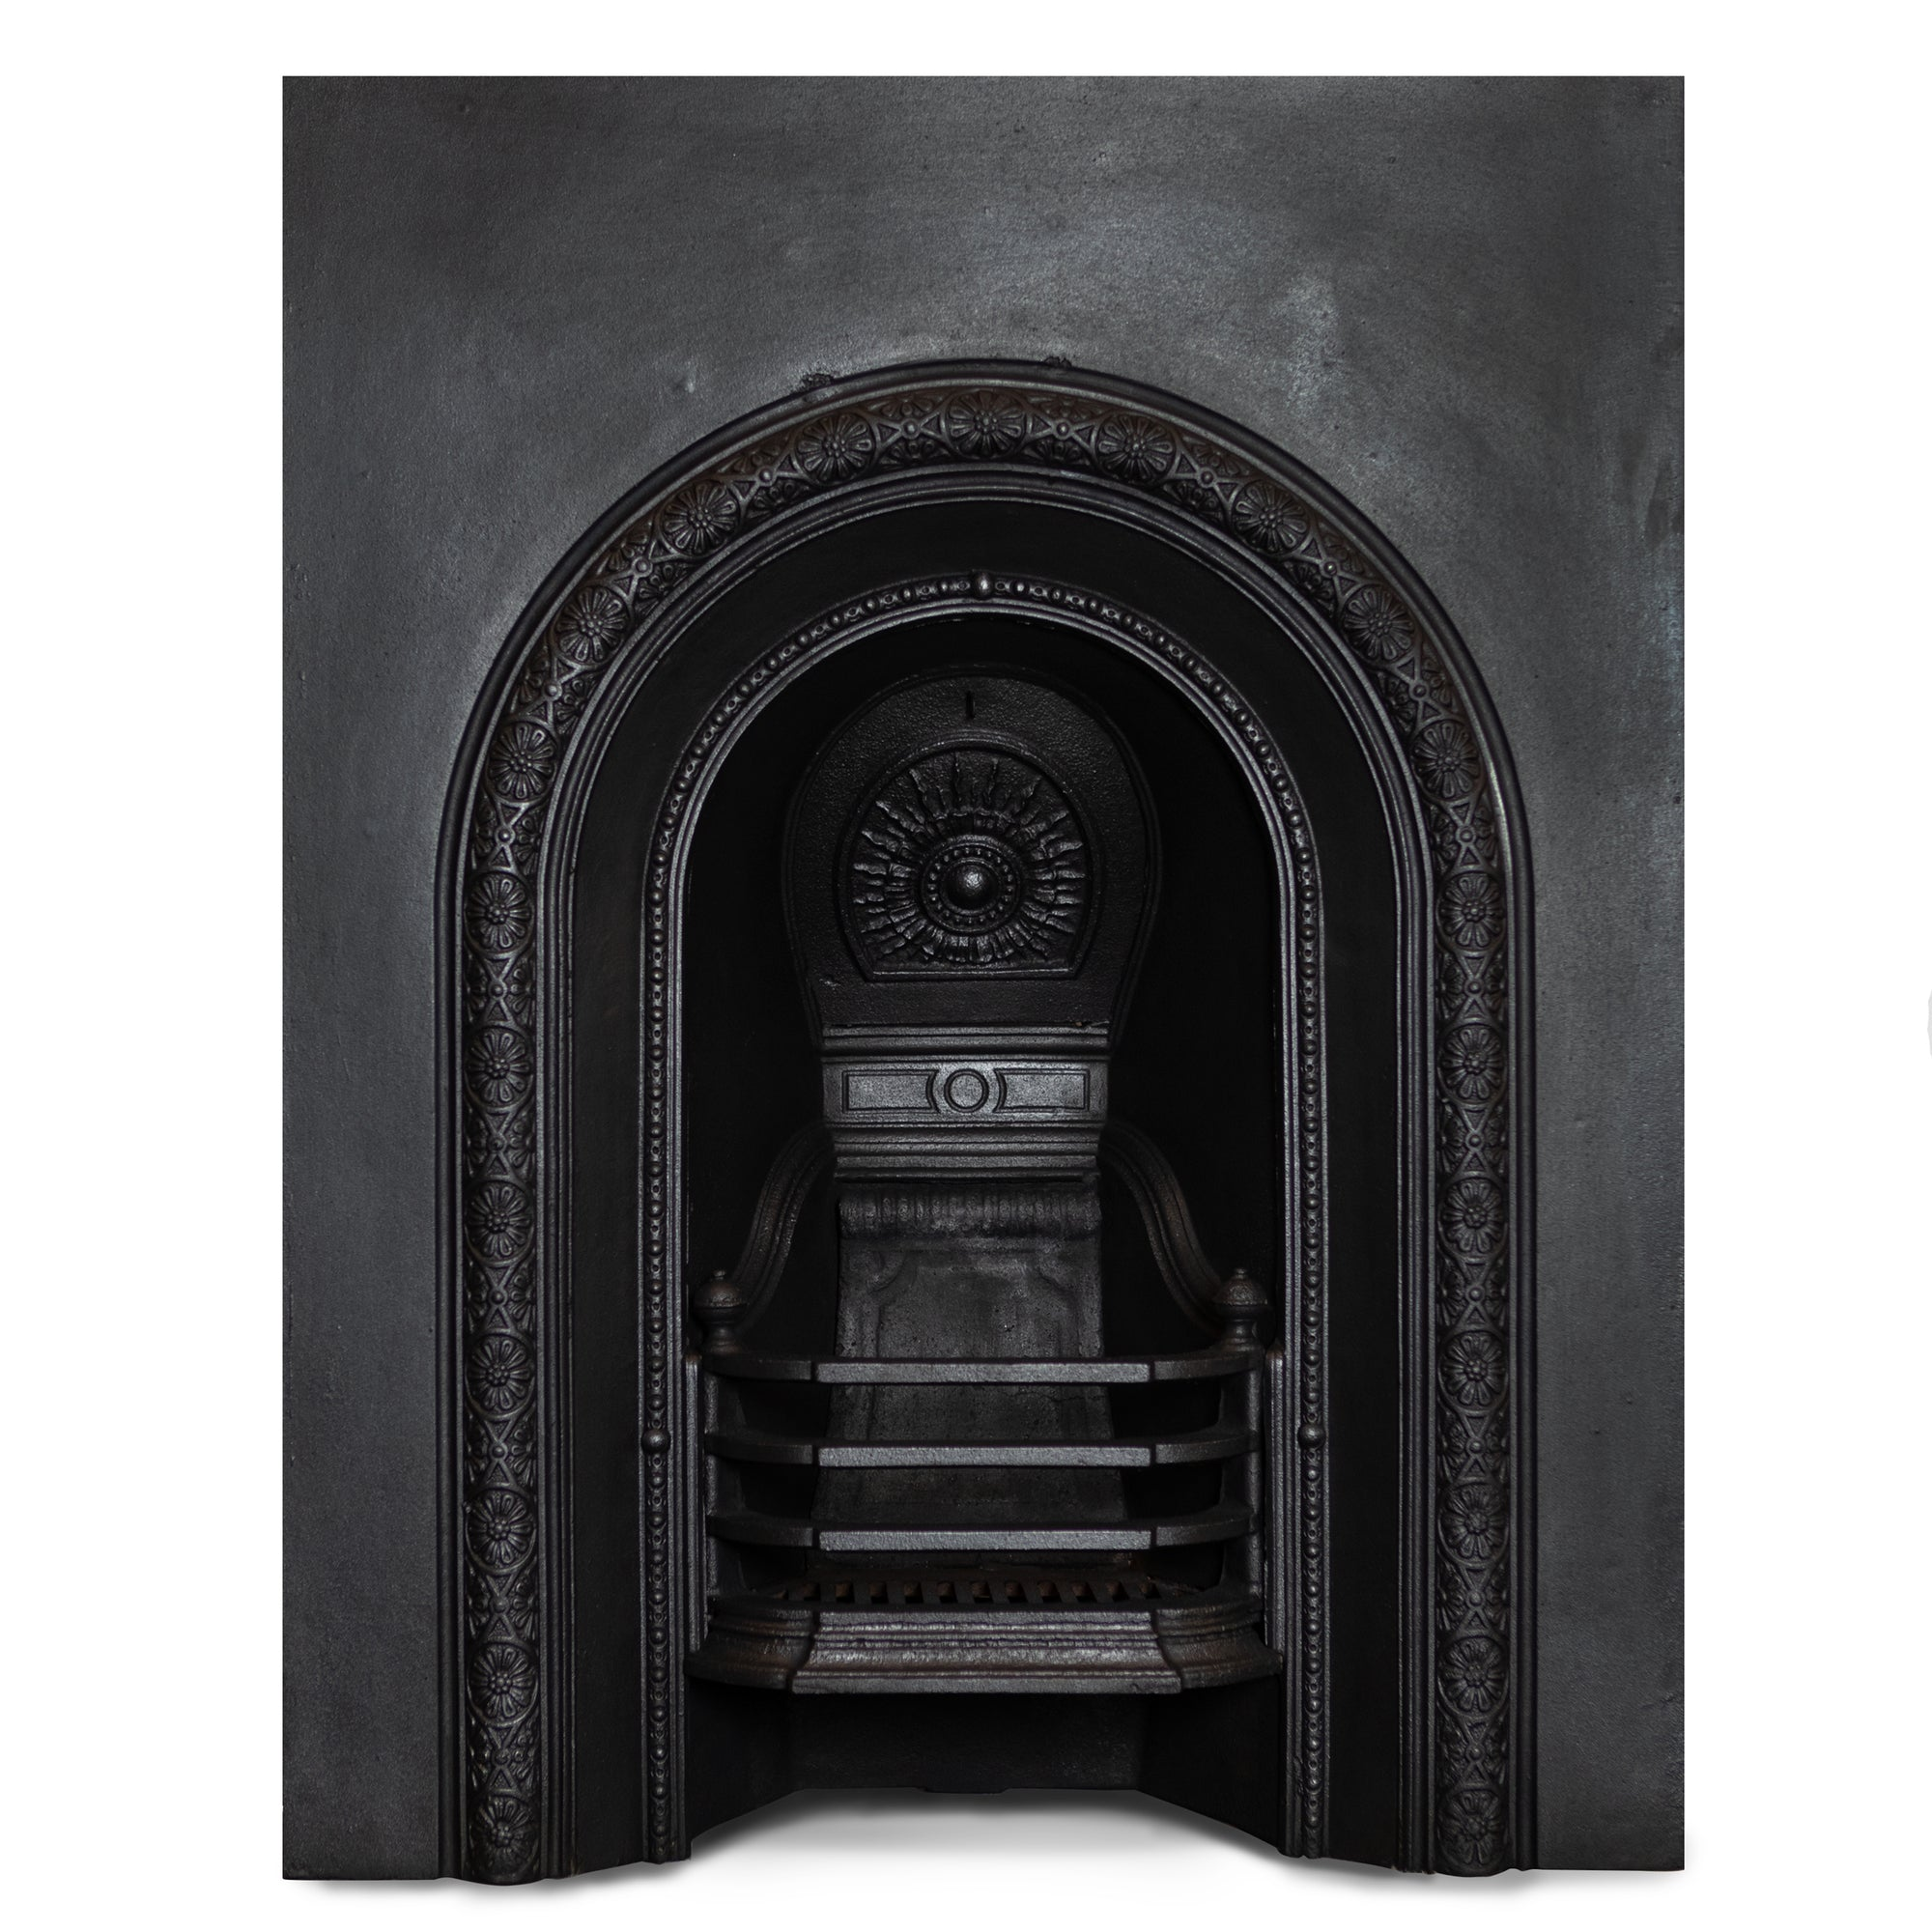 Antique Victorian Arched Cast Iron Fireplace Insert | The Architectural Forum